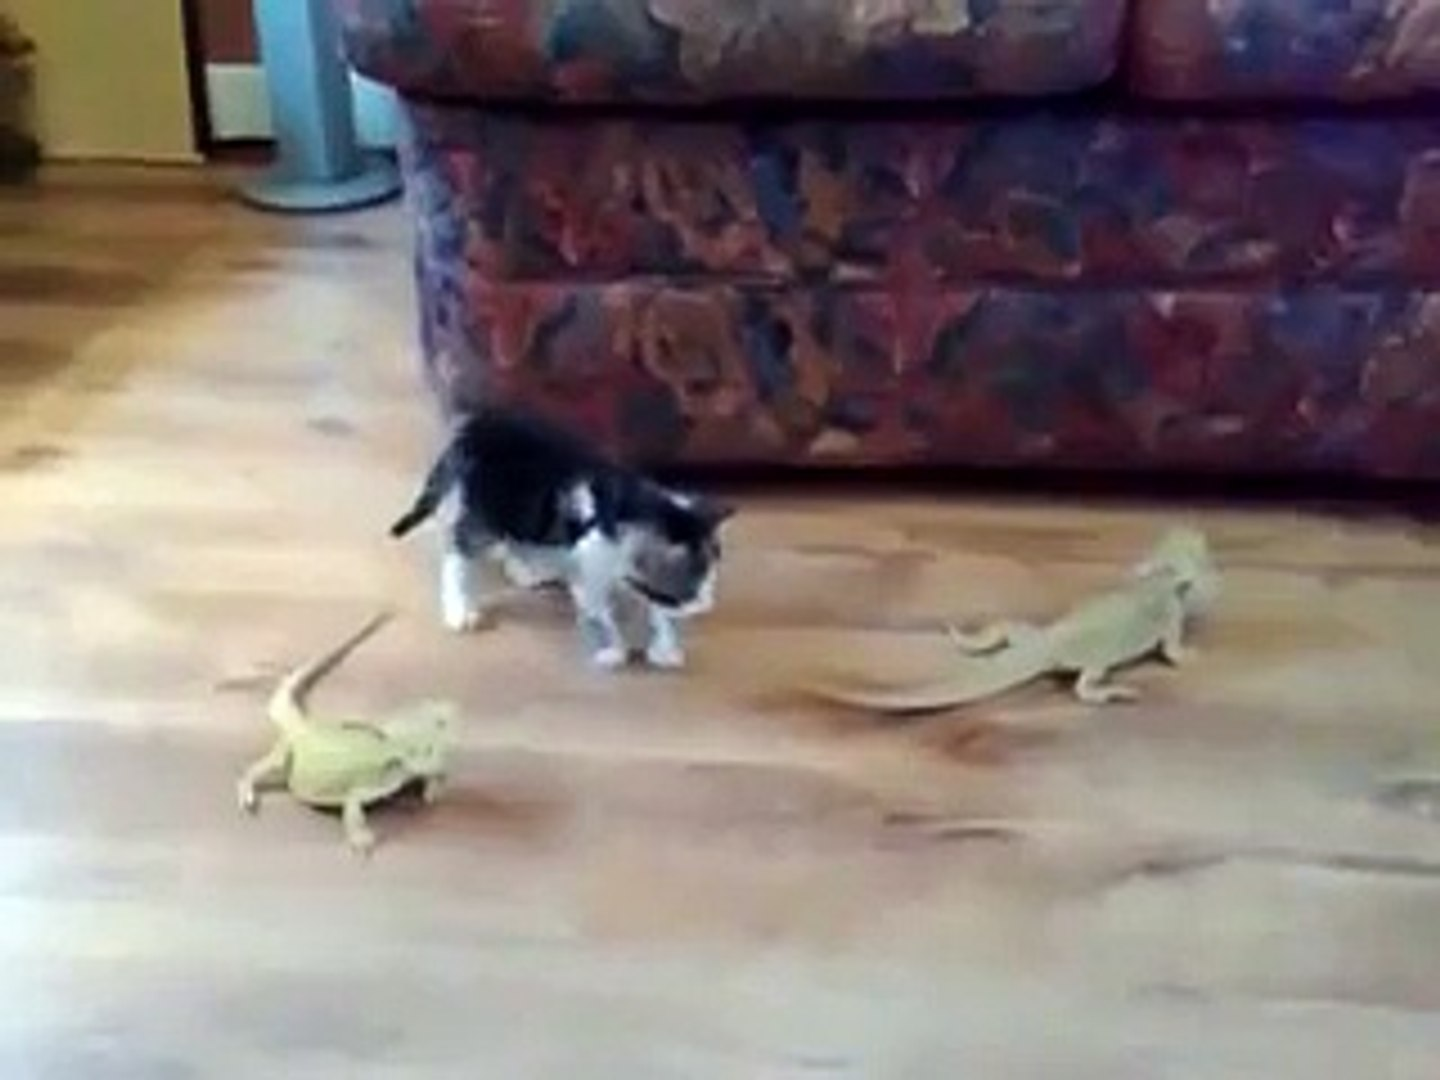 Pet Lizards Surprised Pet Cat At Home. the fight of each other going to viral on social media.